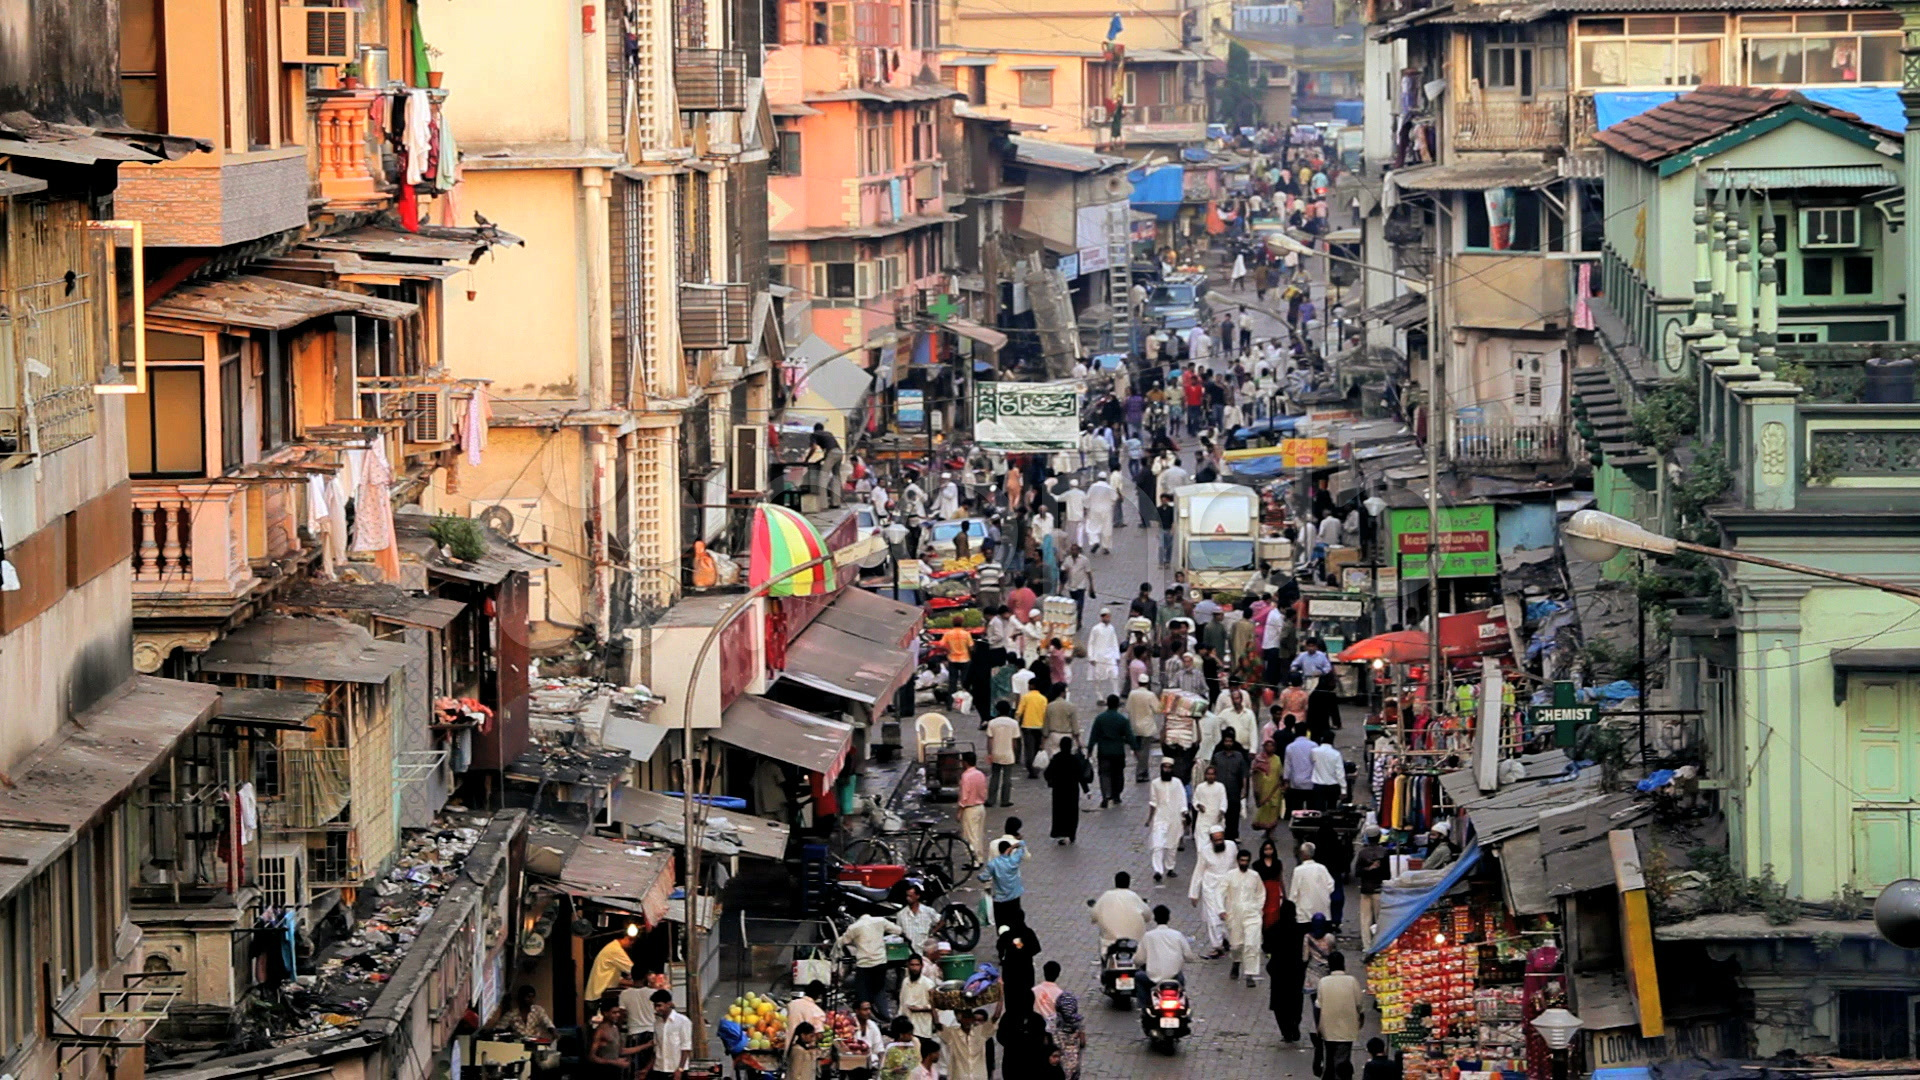 urbanisation in mumbai And while no city in india is prepared to accommodate this growth, mumbai's dense urban environment proves particularly vulnerable to the flood of vehicles.